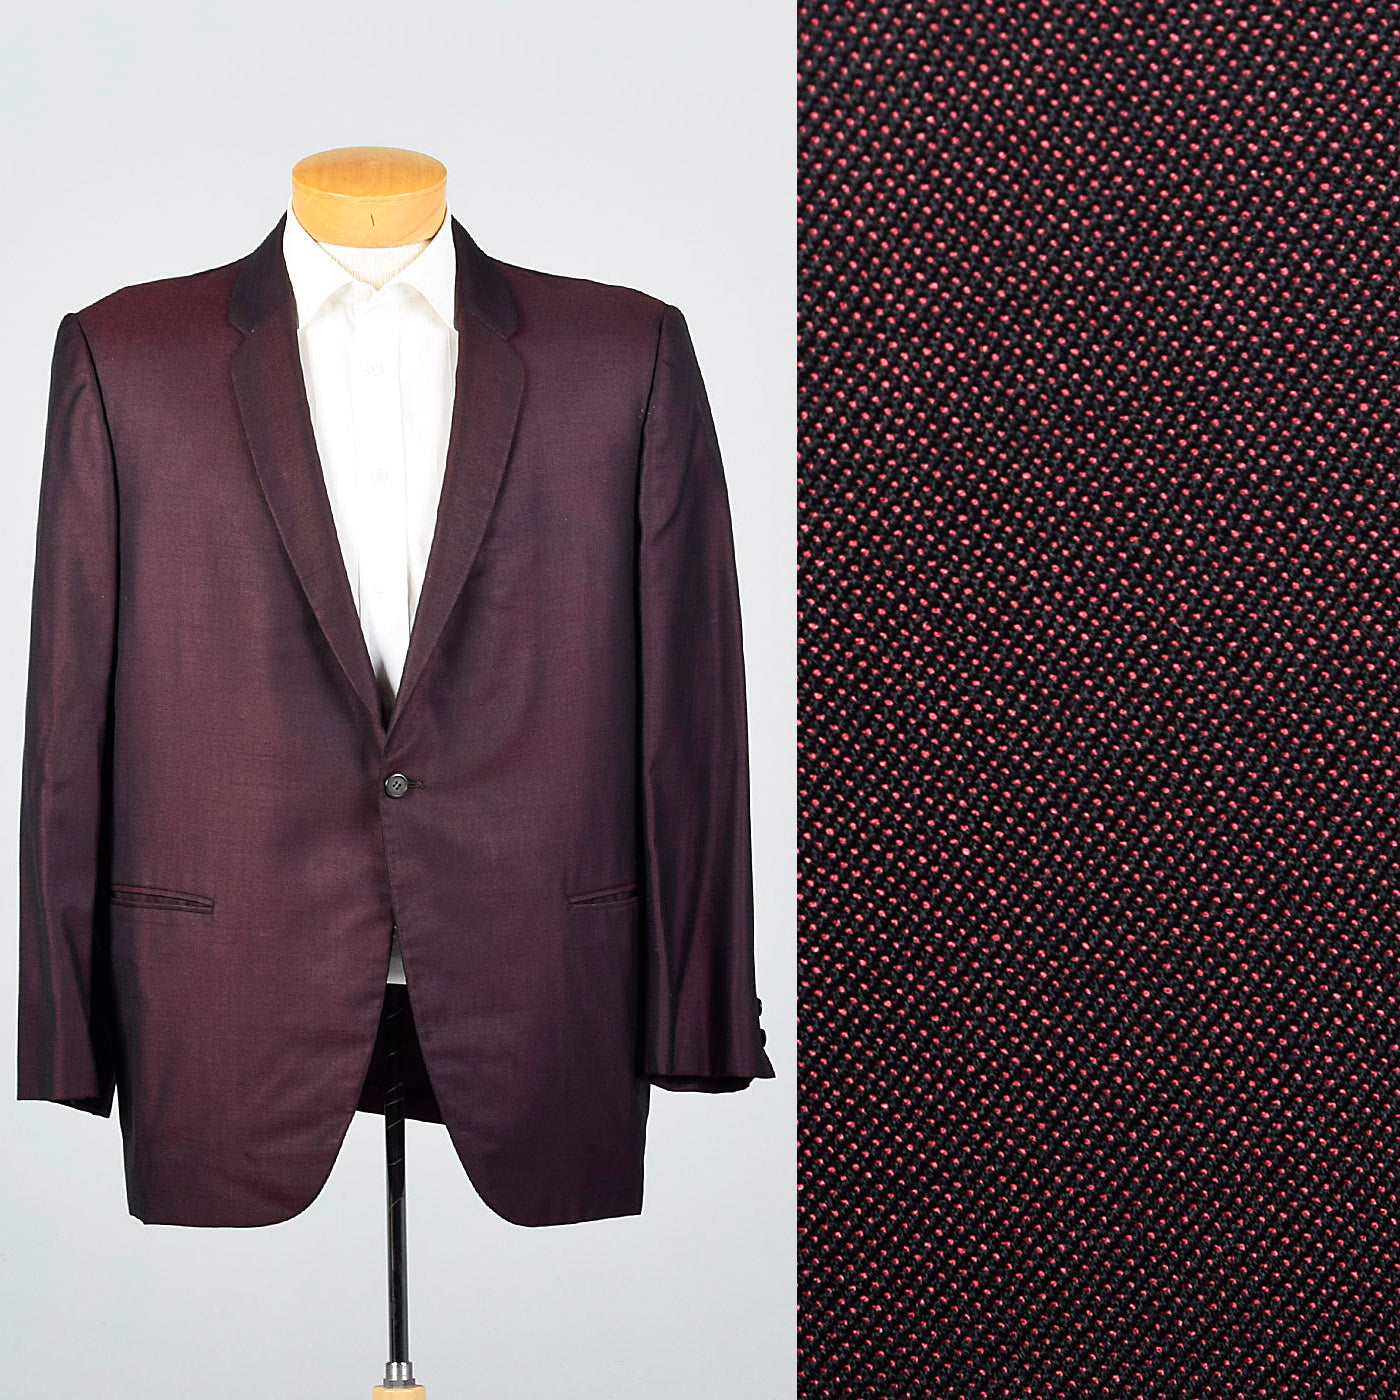 1950s Red and Black Sharkskin Jacket with Rounded Lapels